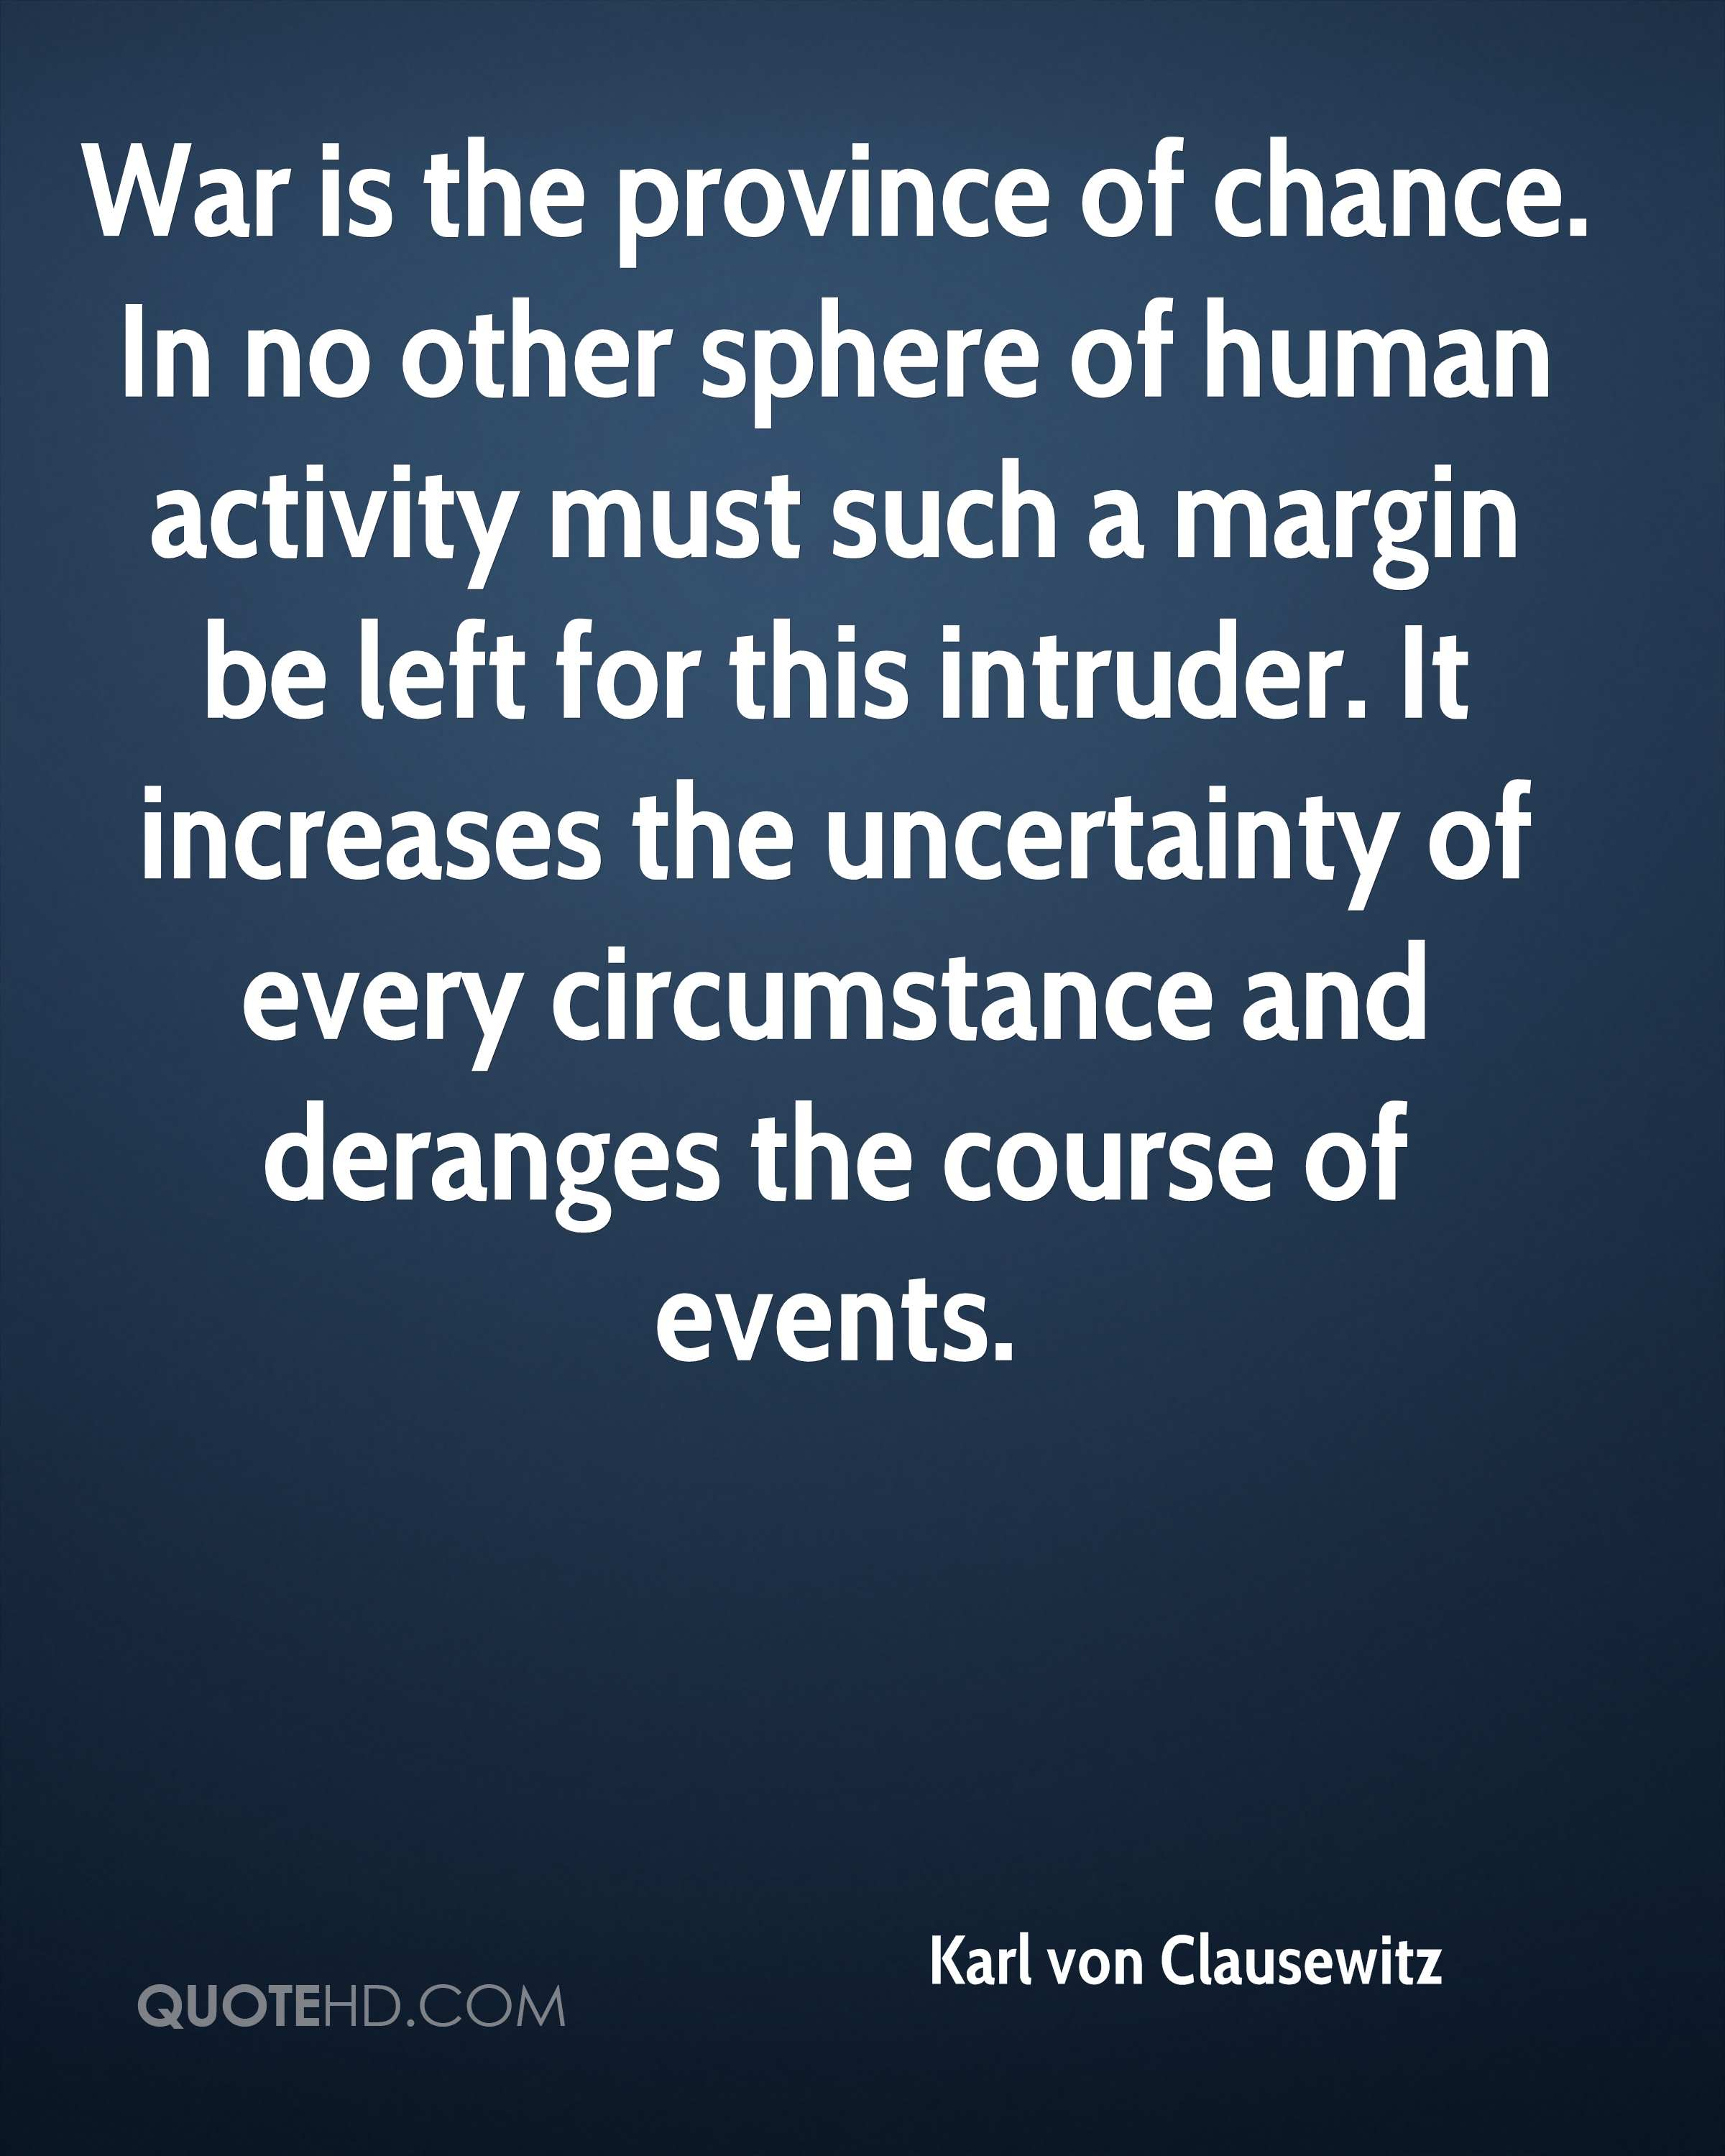 War is the province of chance. In no other sphere of human activity must such a margin be left for this intruder. It increases the uncertainty of every circumstance and deranges the course of events.